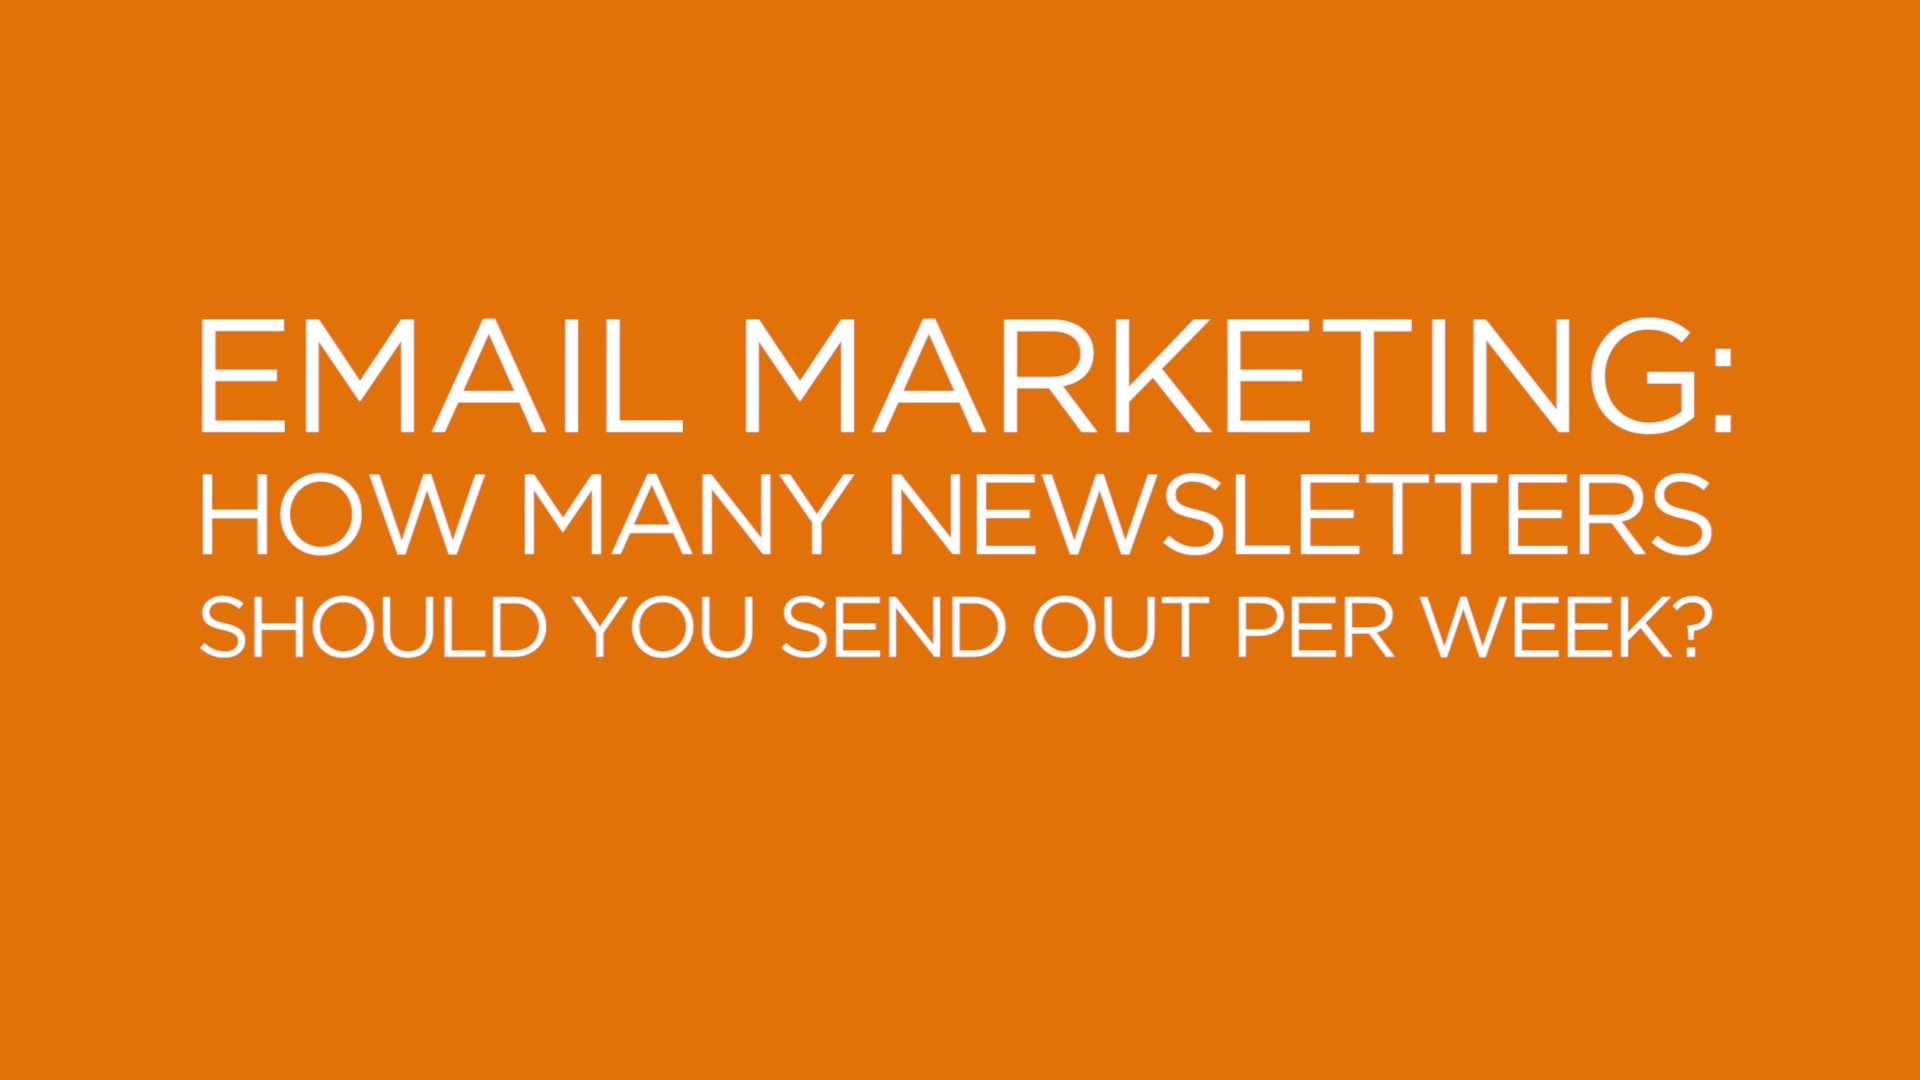 2015-09-25-email-frequency-often-should-send-out-newsletter.0008